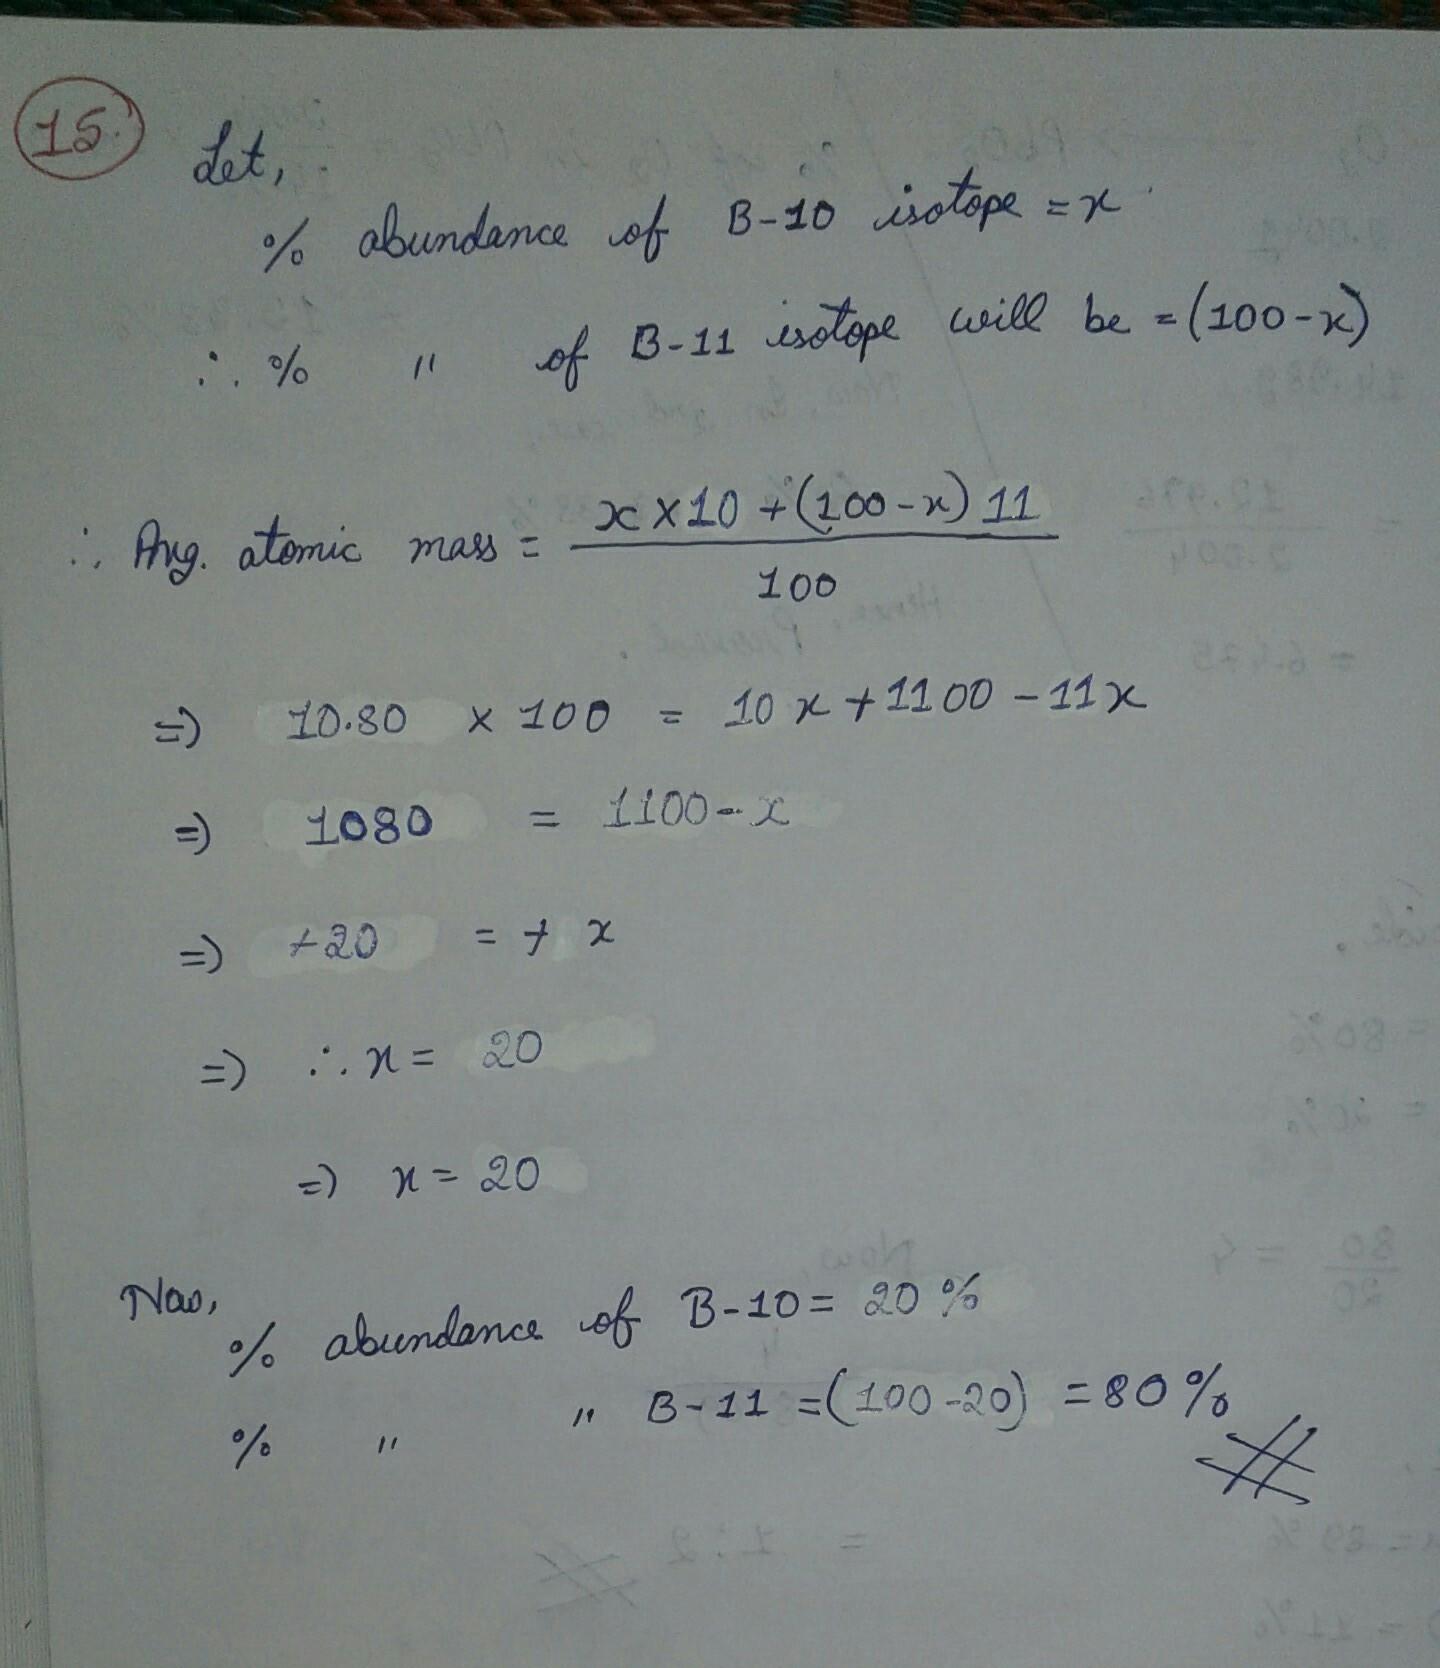 Boron has two isotopes b10 and b11 the average atomic mass of boron is  10.80u .calculate the - Brainly.in